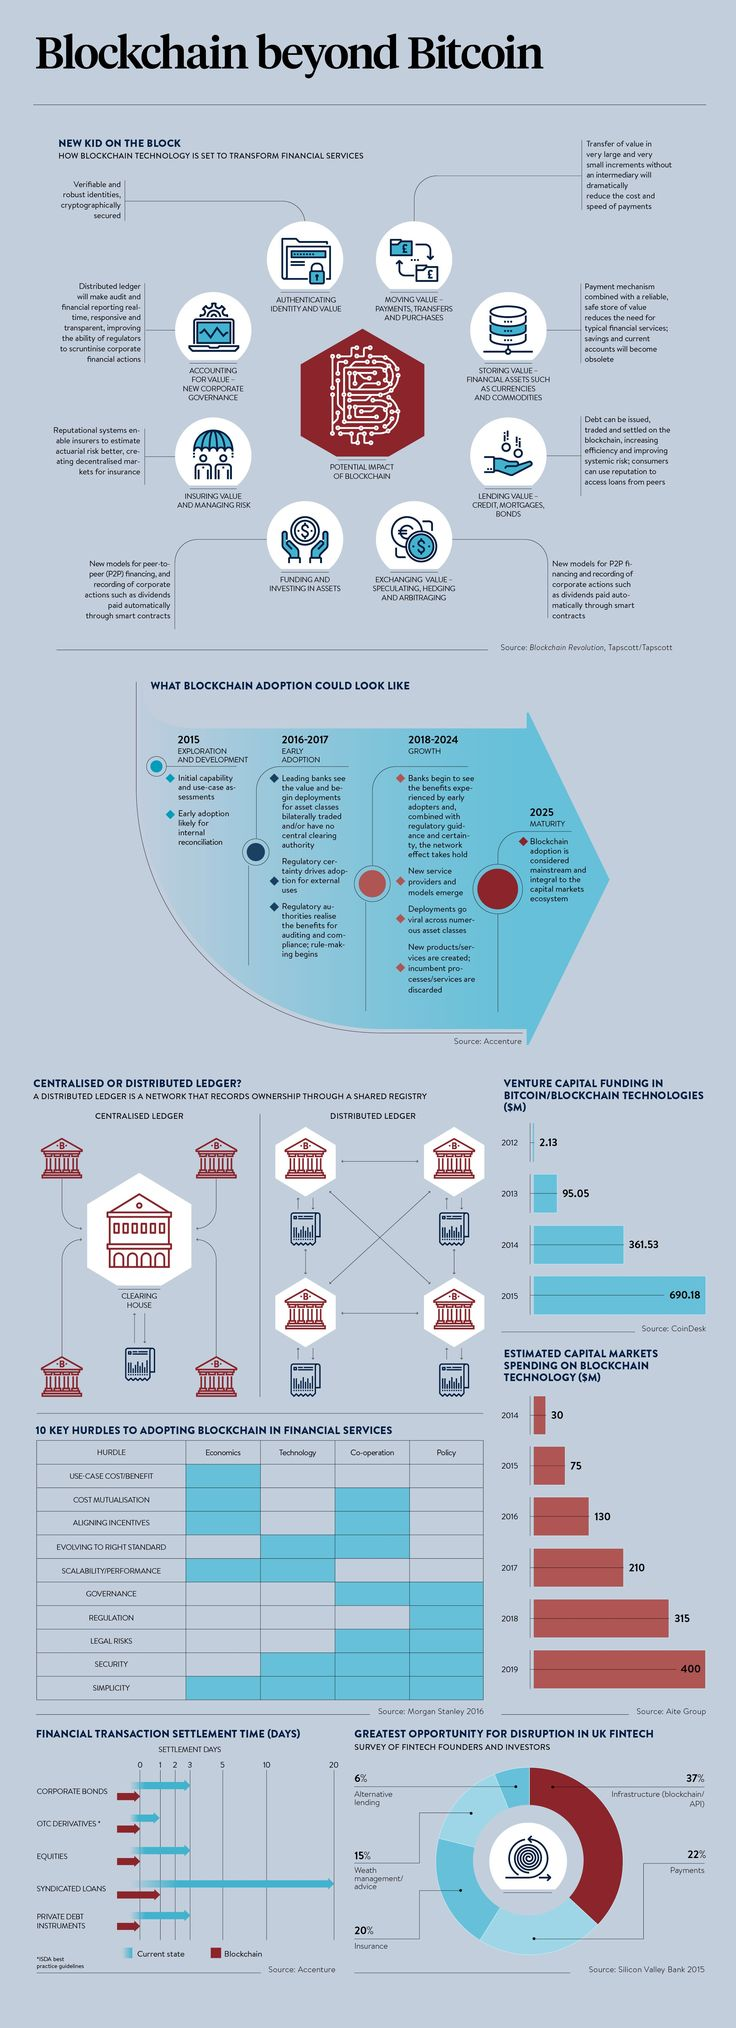 Infographic outlining what blockchain adoption could look like, the 10 key hurdles to adopting blockchain in financial services andmore